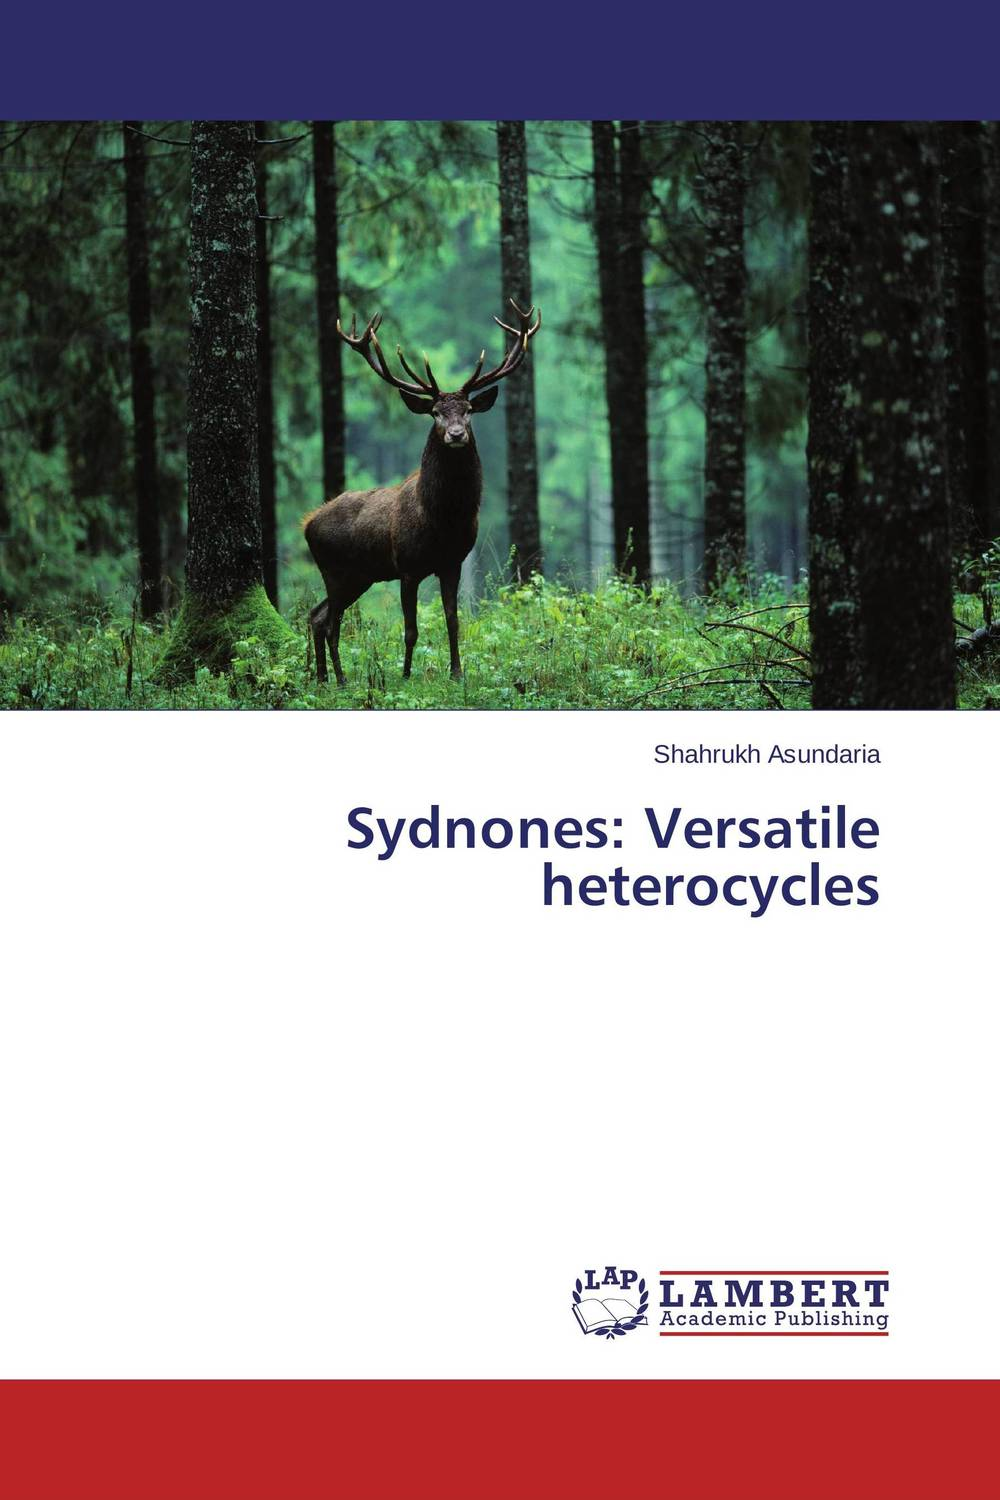 Sydnones: Versatile heterocycles medicinal chemistry of heterocyclic natural compounds